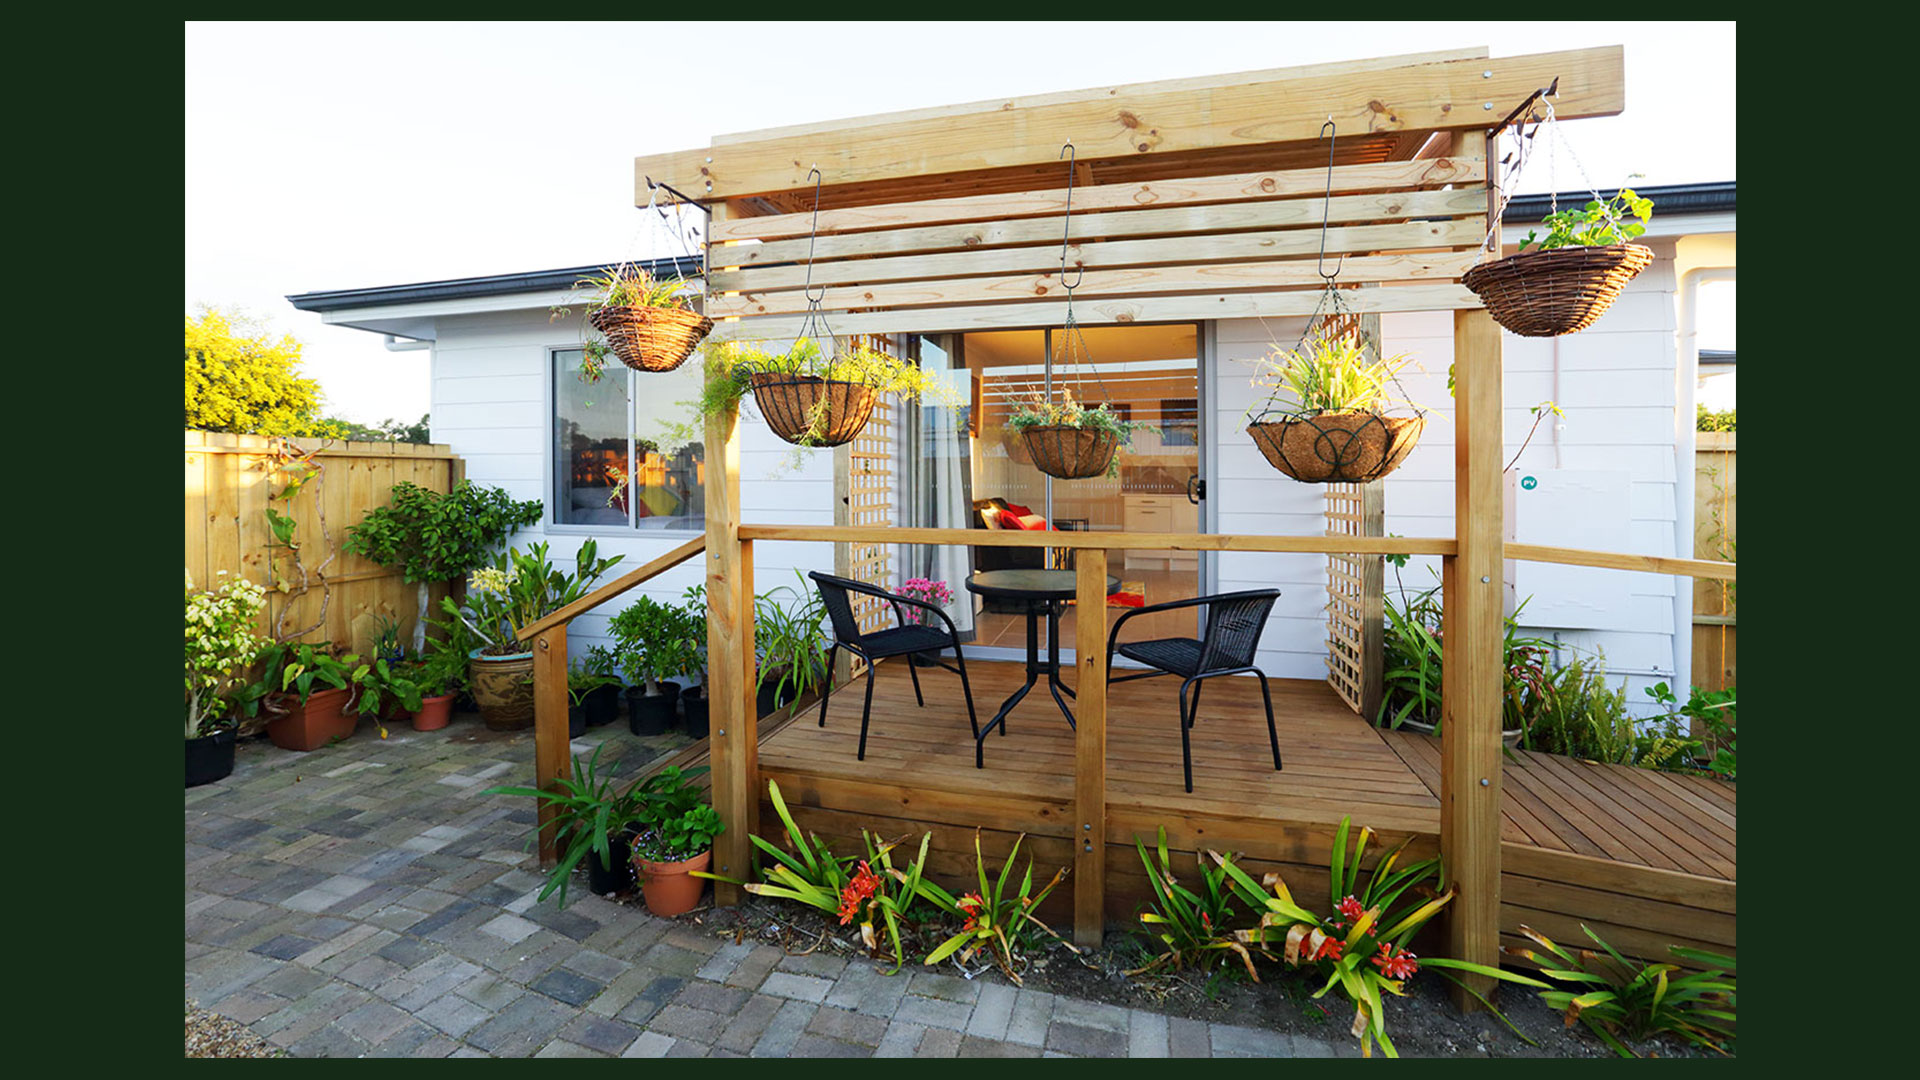 Private-courtyard-&-deck-featuring-outdo